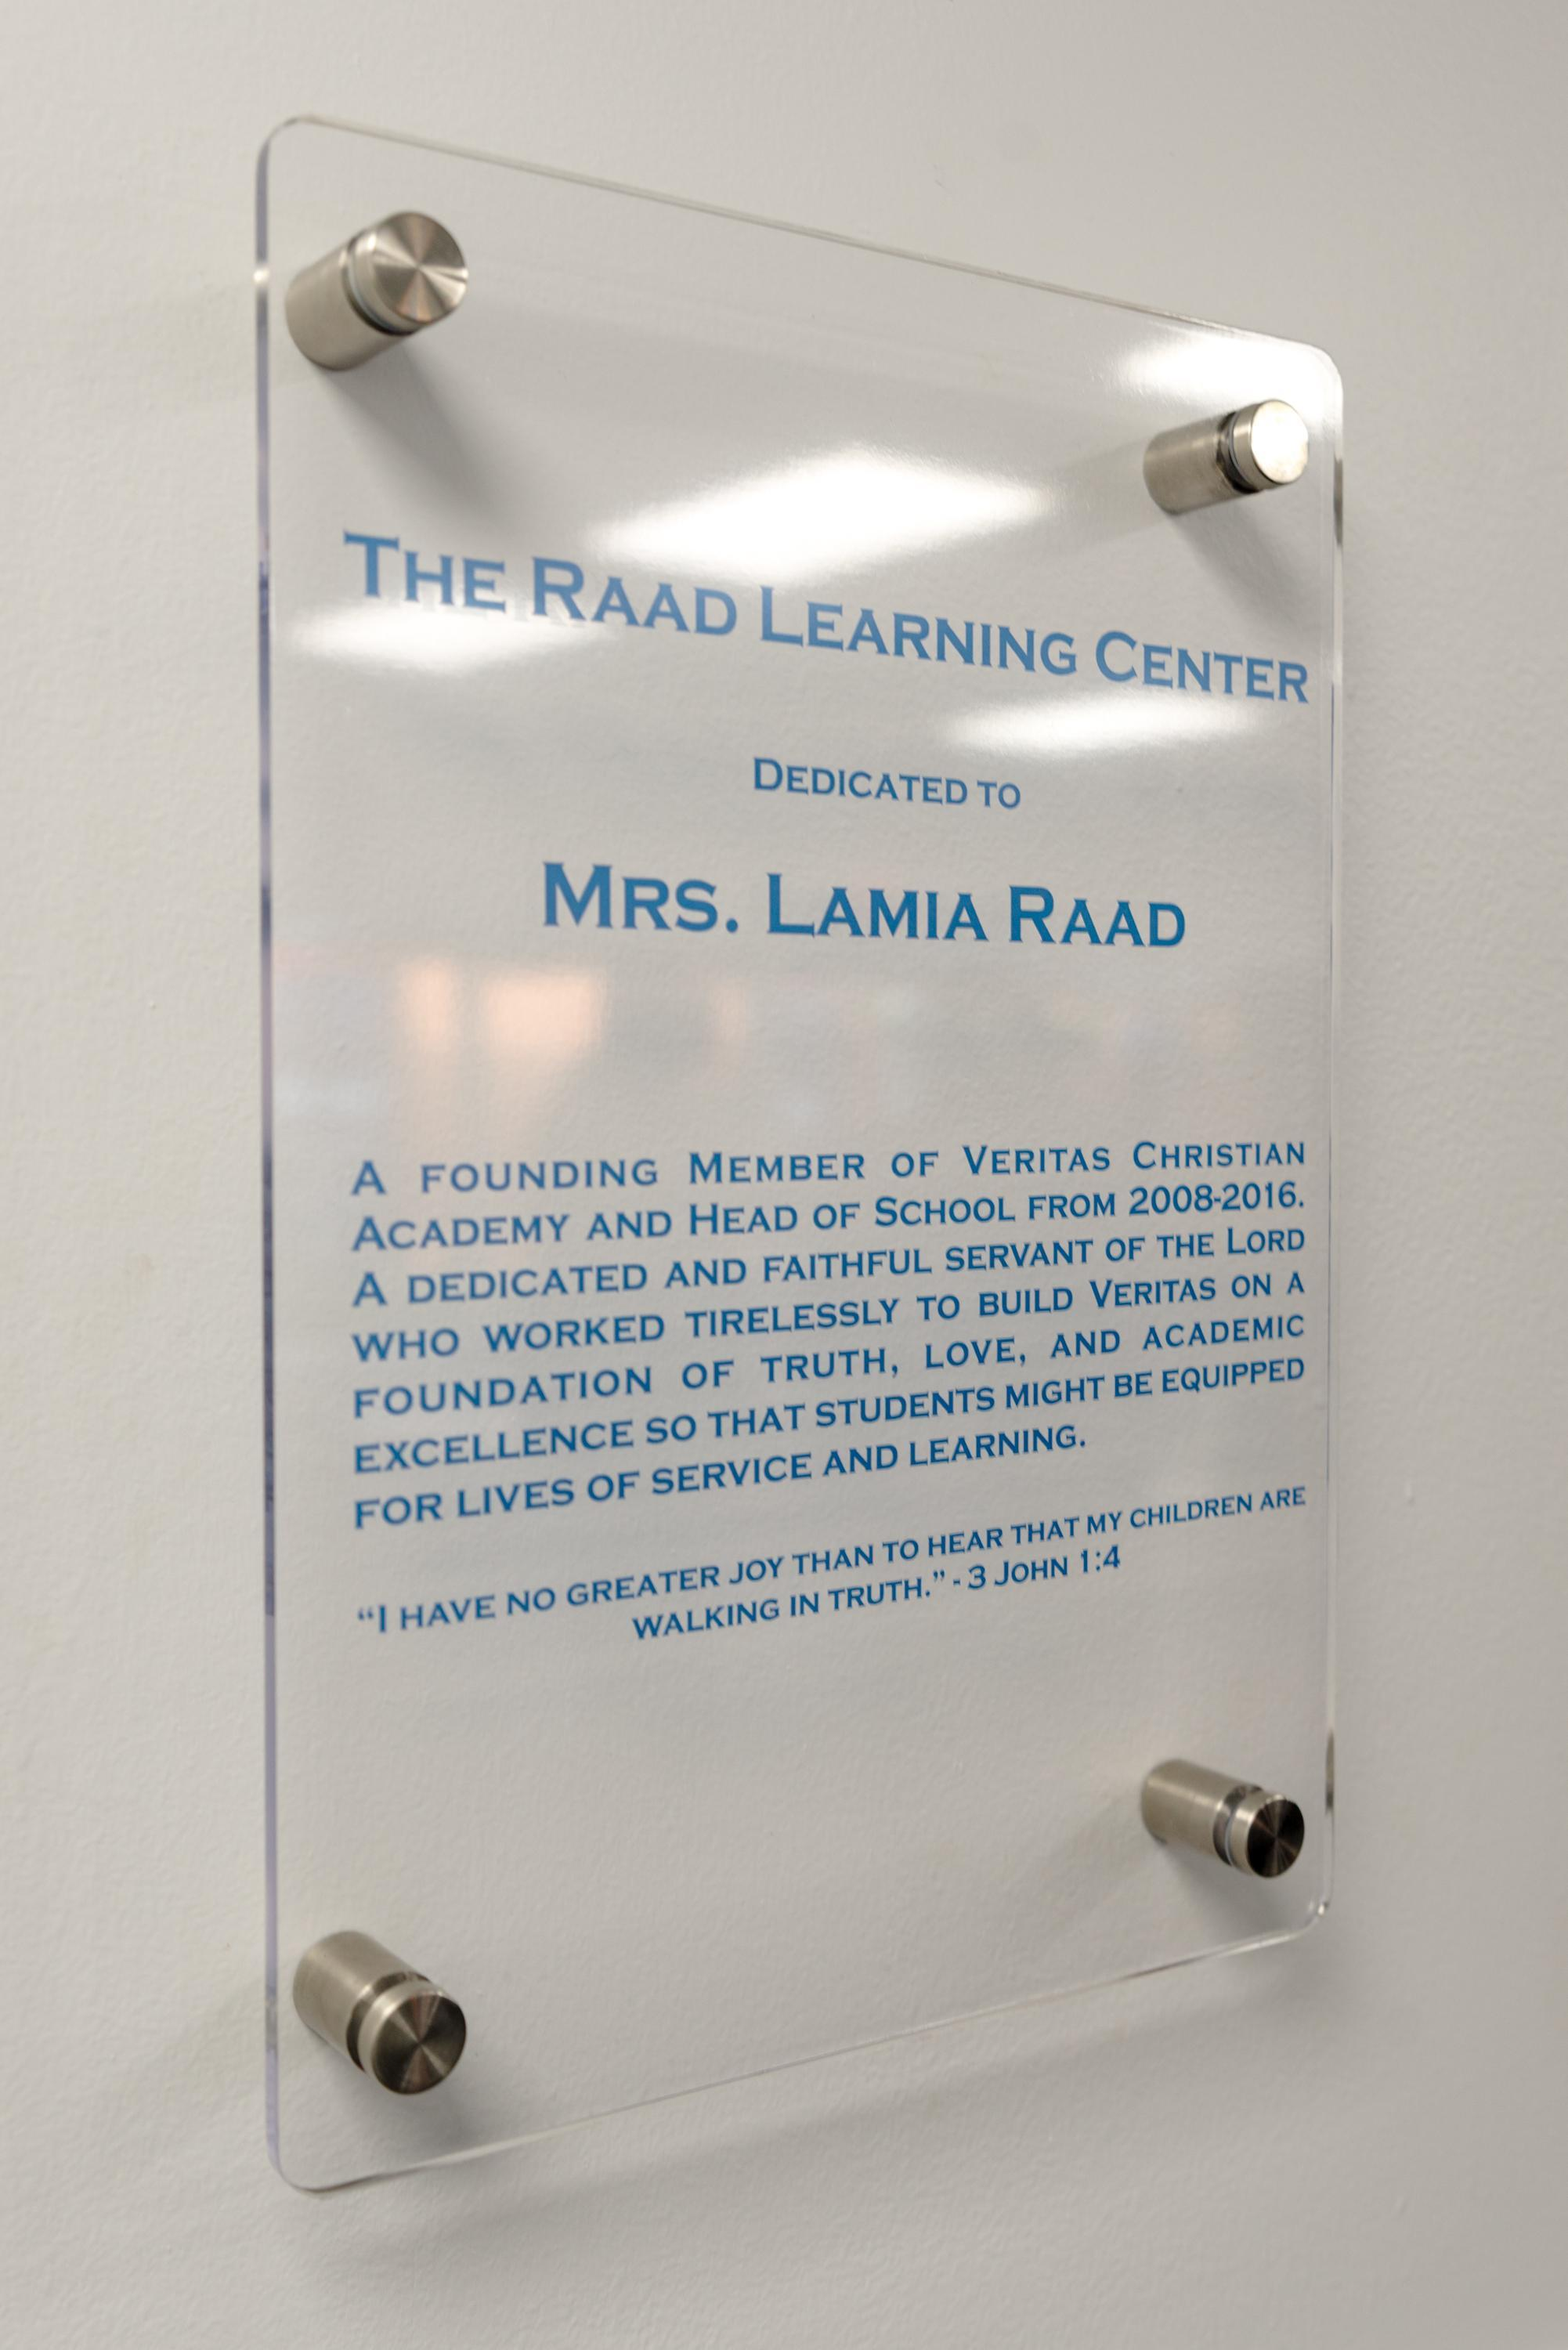 Dedication to the Raad Learning Center